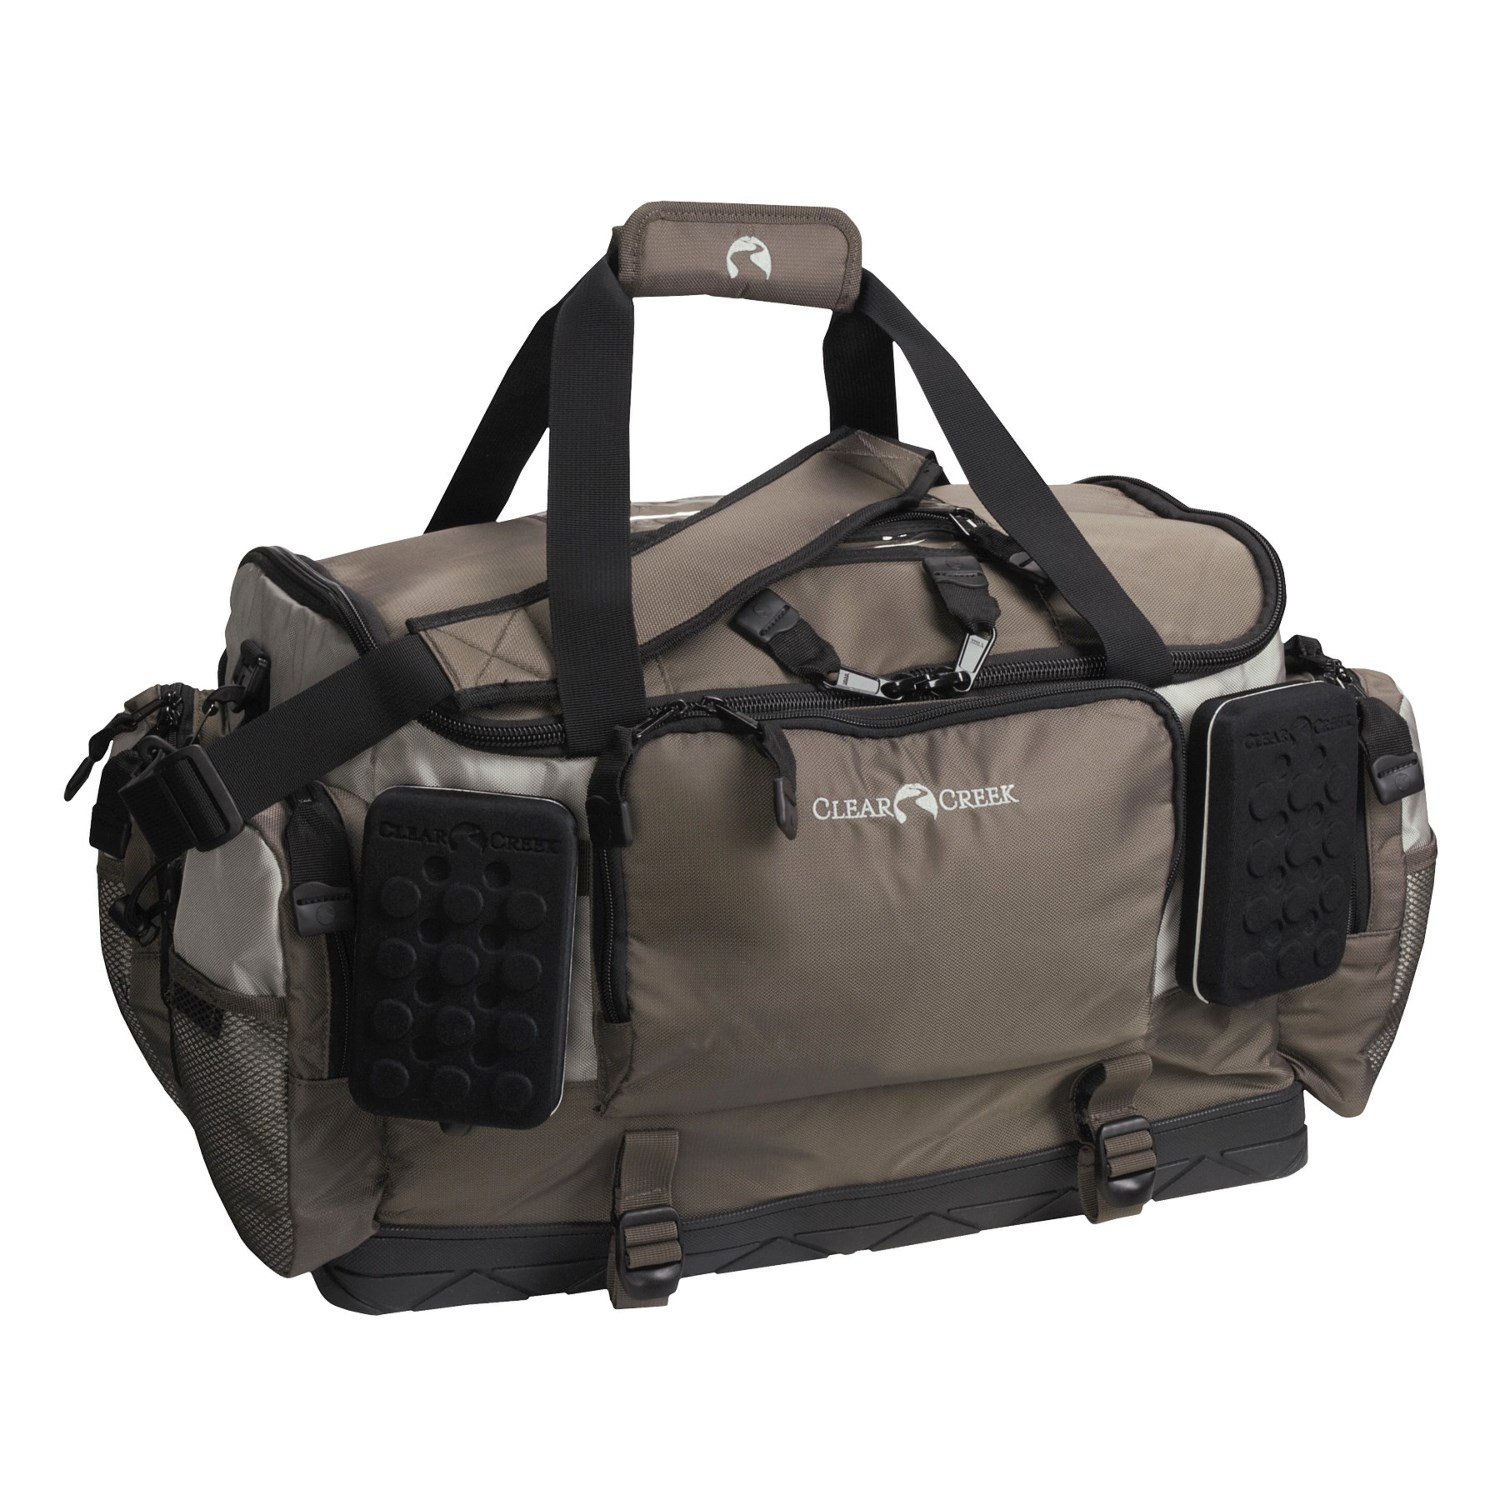 clear creek the rush creek fly fishing gear bag w fly